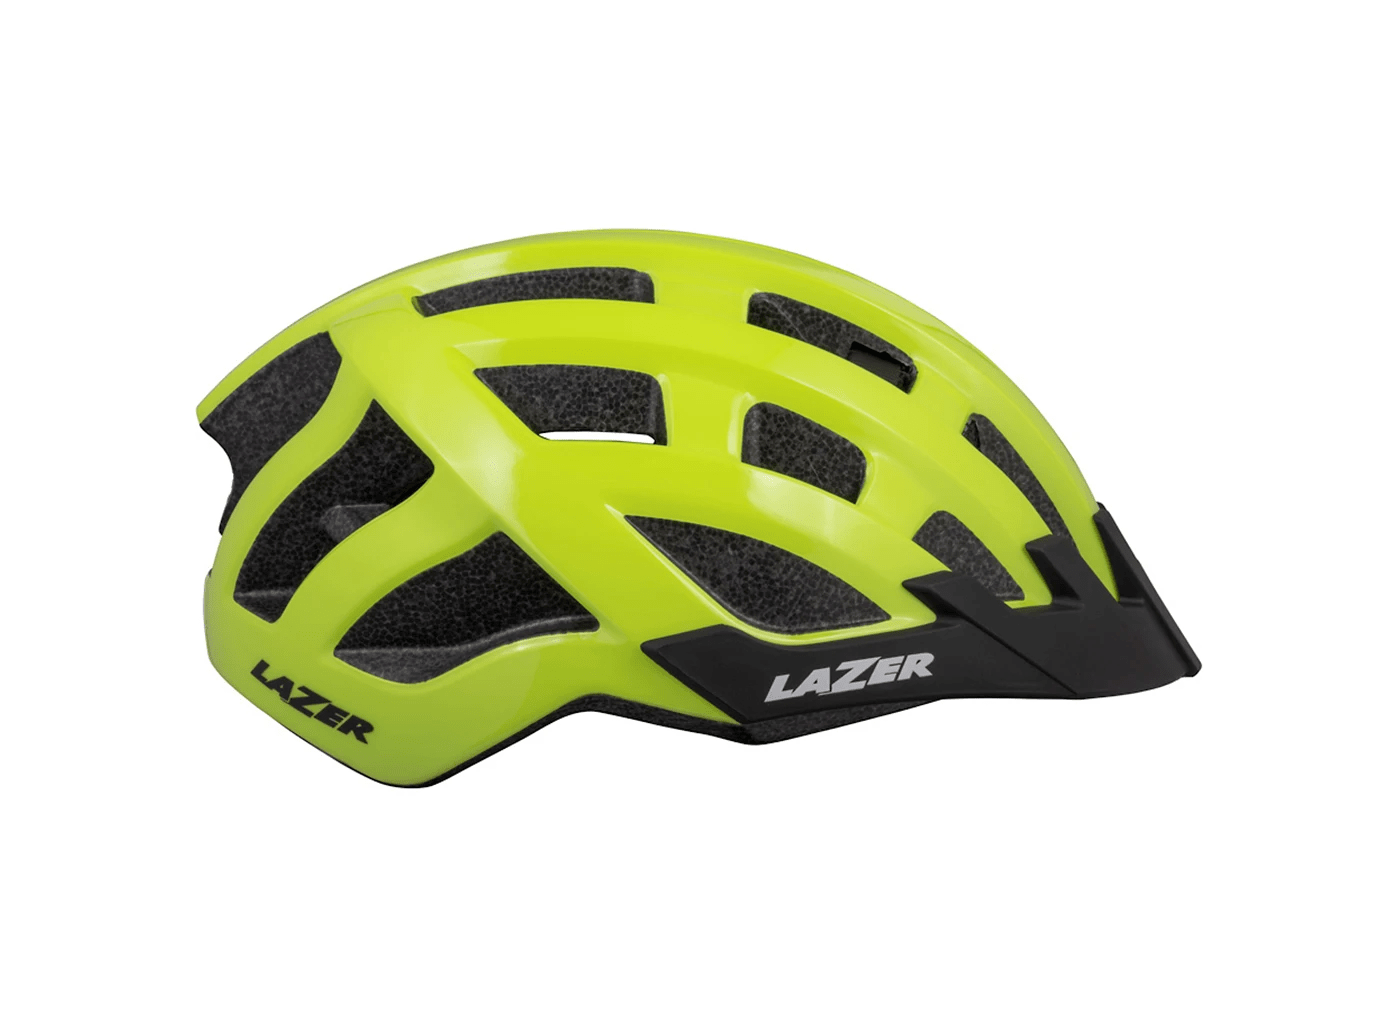 Lazer Compact DLX helmet with LED yellow